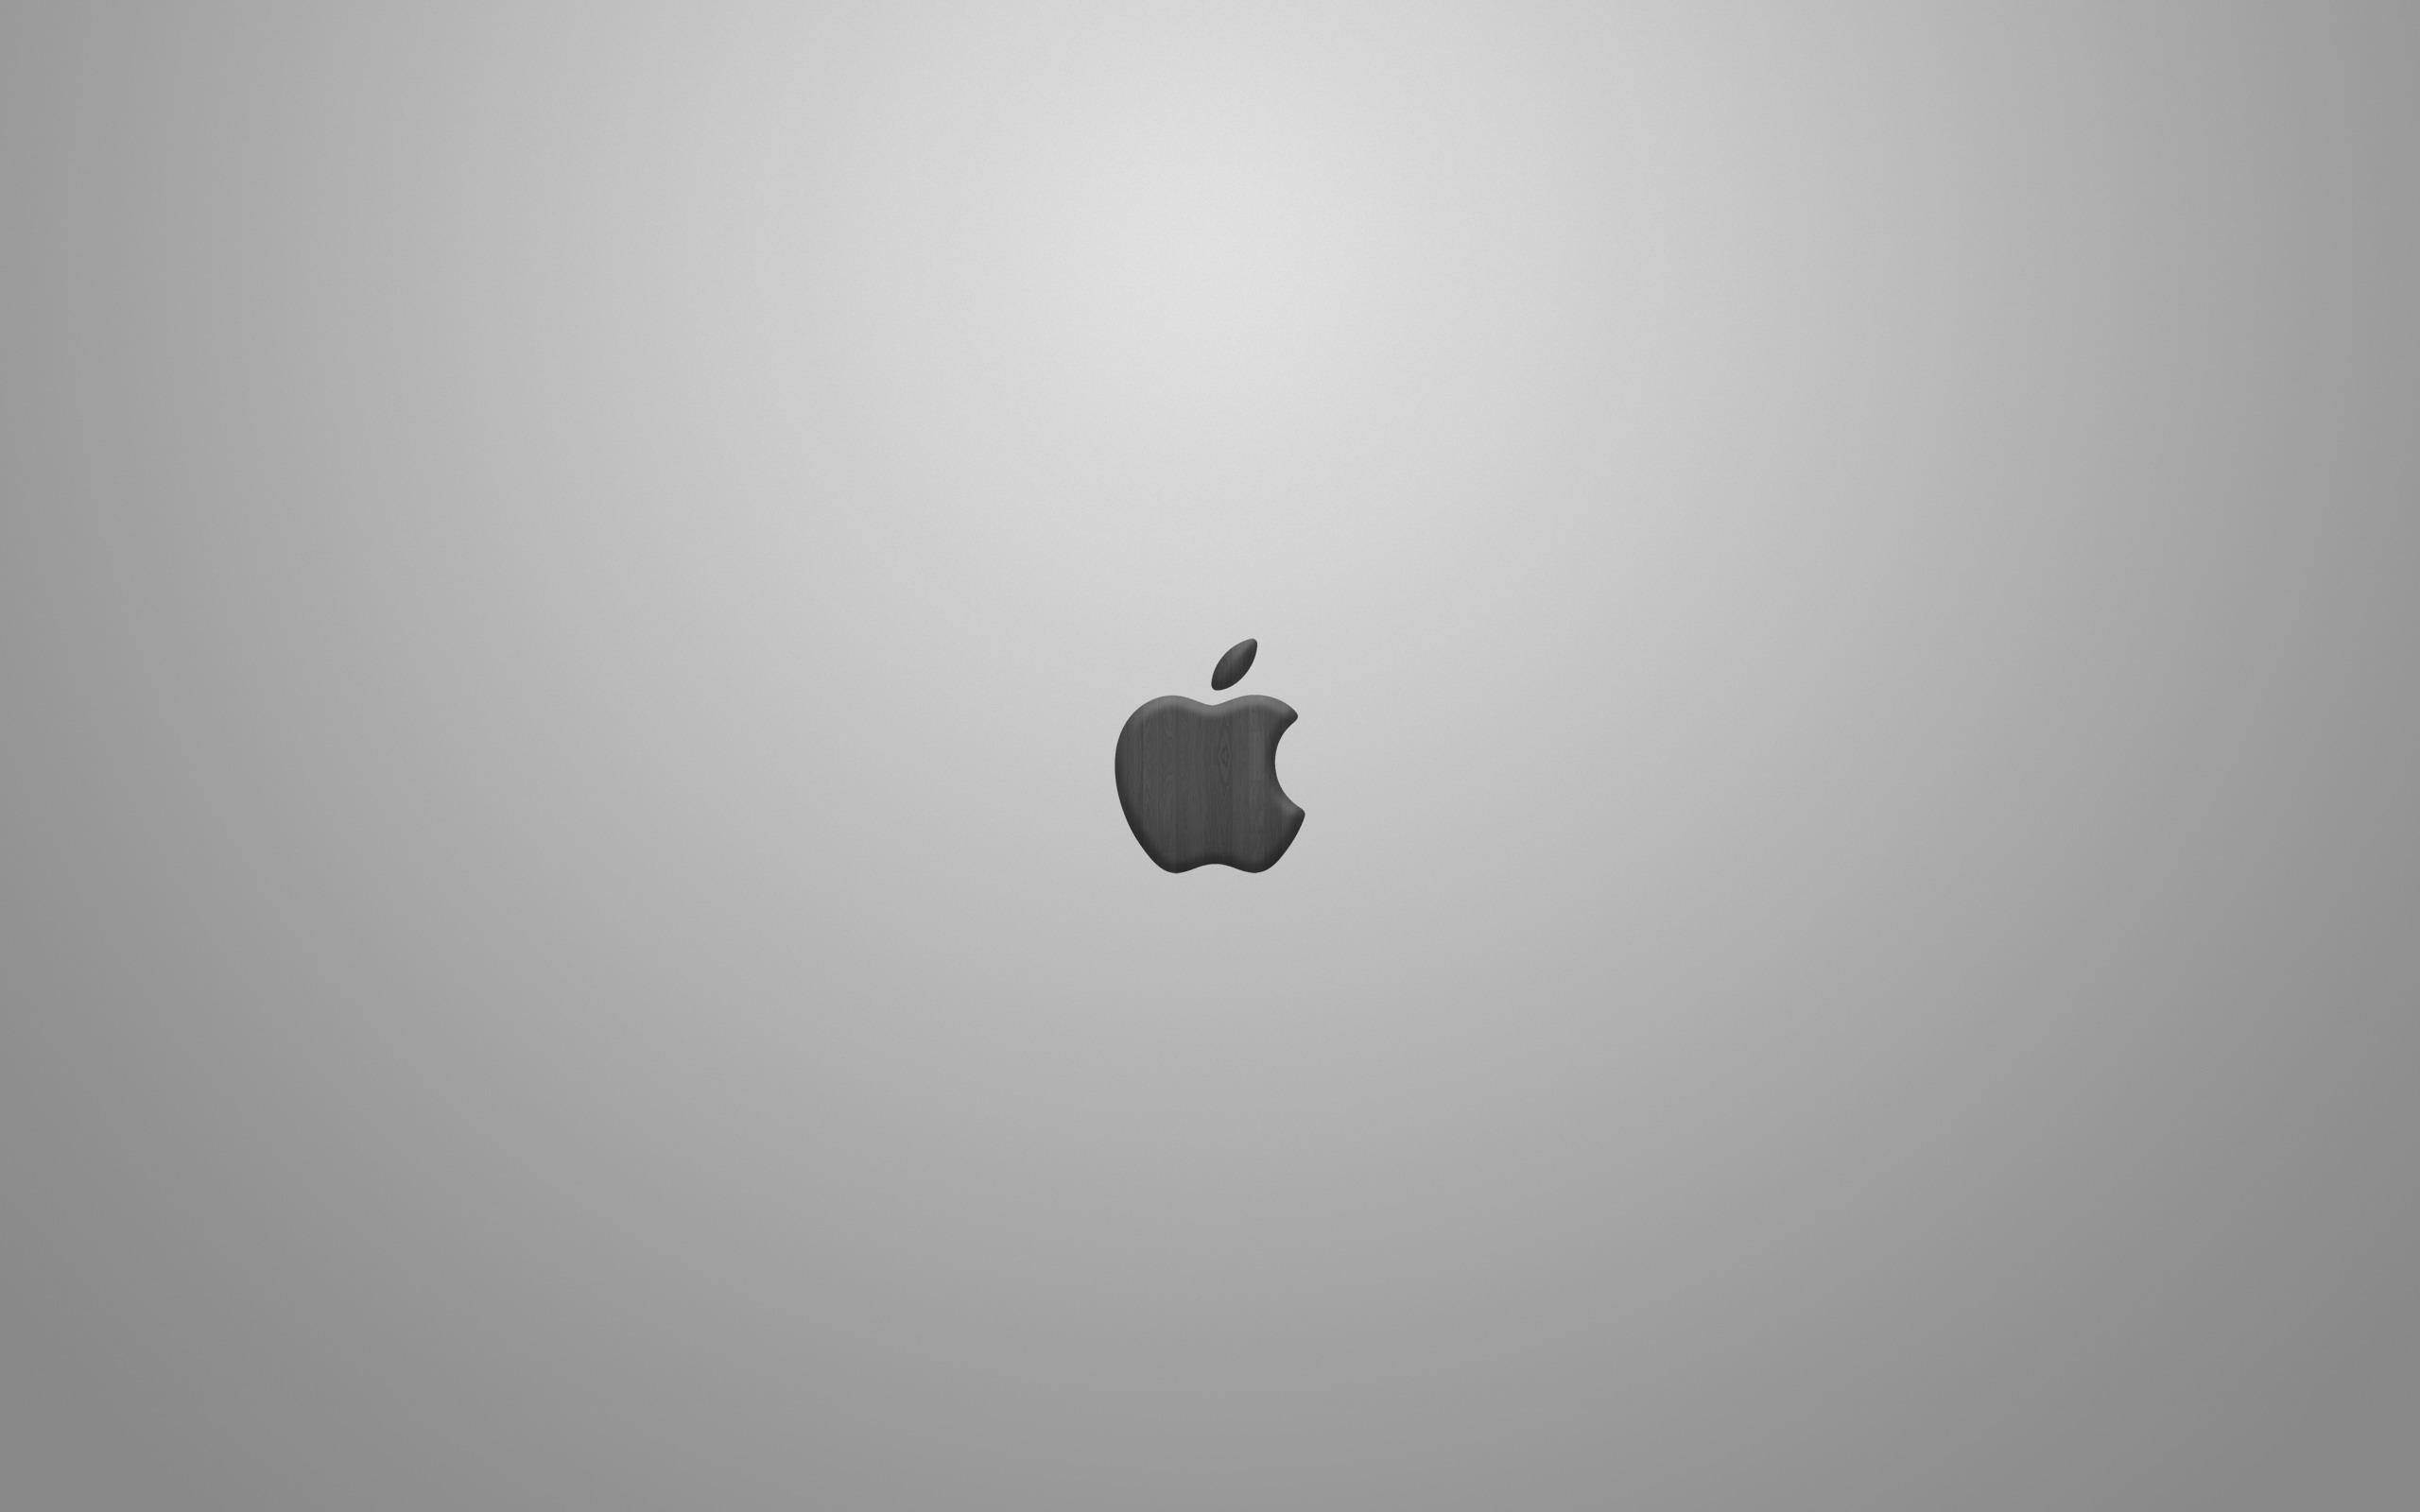 hd wallpapers for mac 5018